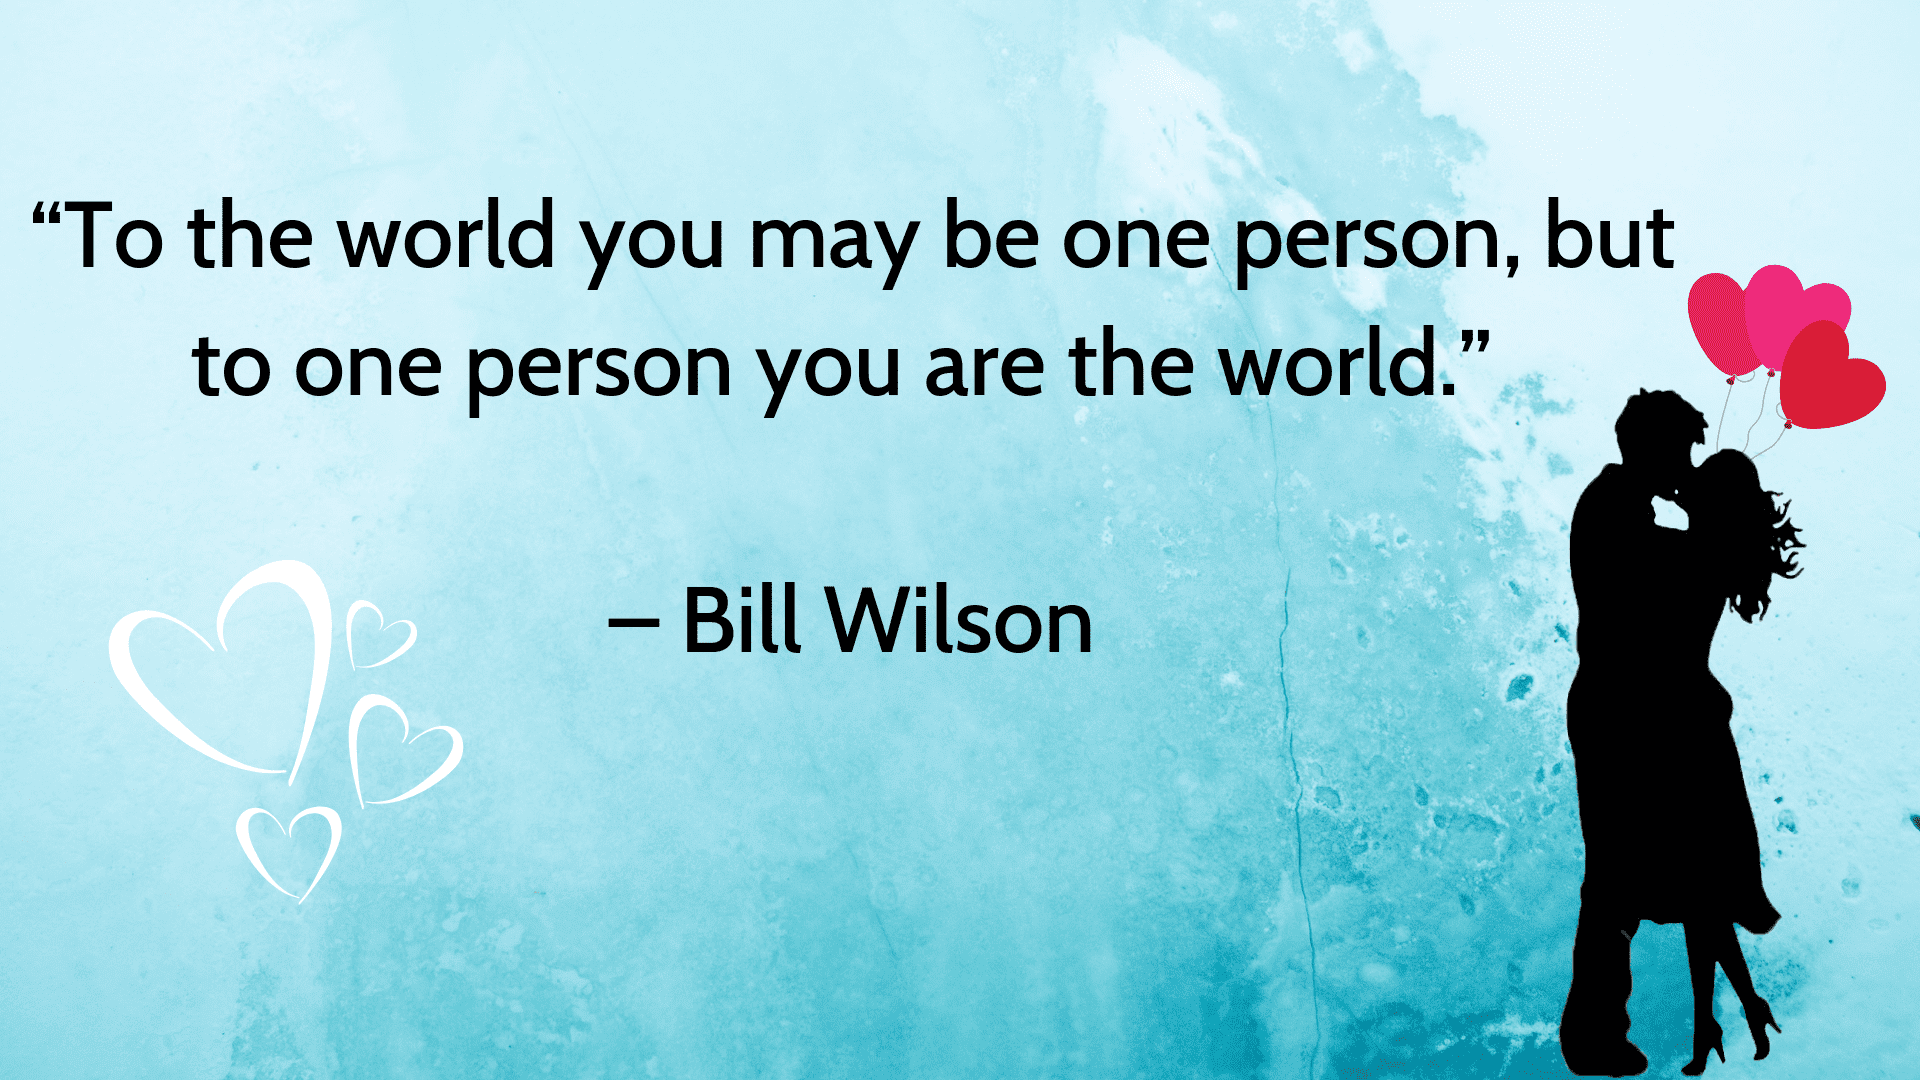 Love Quotes, love quotes images, love quotes for him, love quotes for her, short love quotes, inspirational love quotes, romantic love quotes, feeling love quotes, strong love quotes, To The World, You May Be One Person But To One Person You Are The World - Bill Wilson;